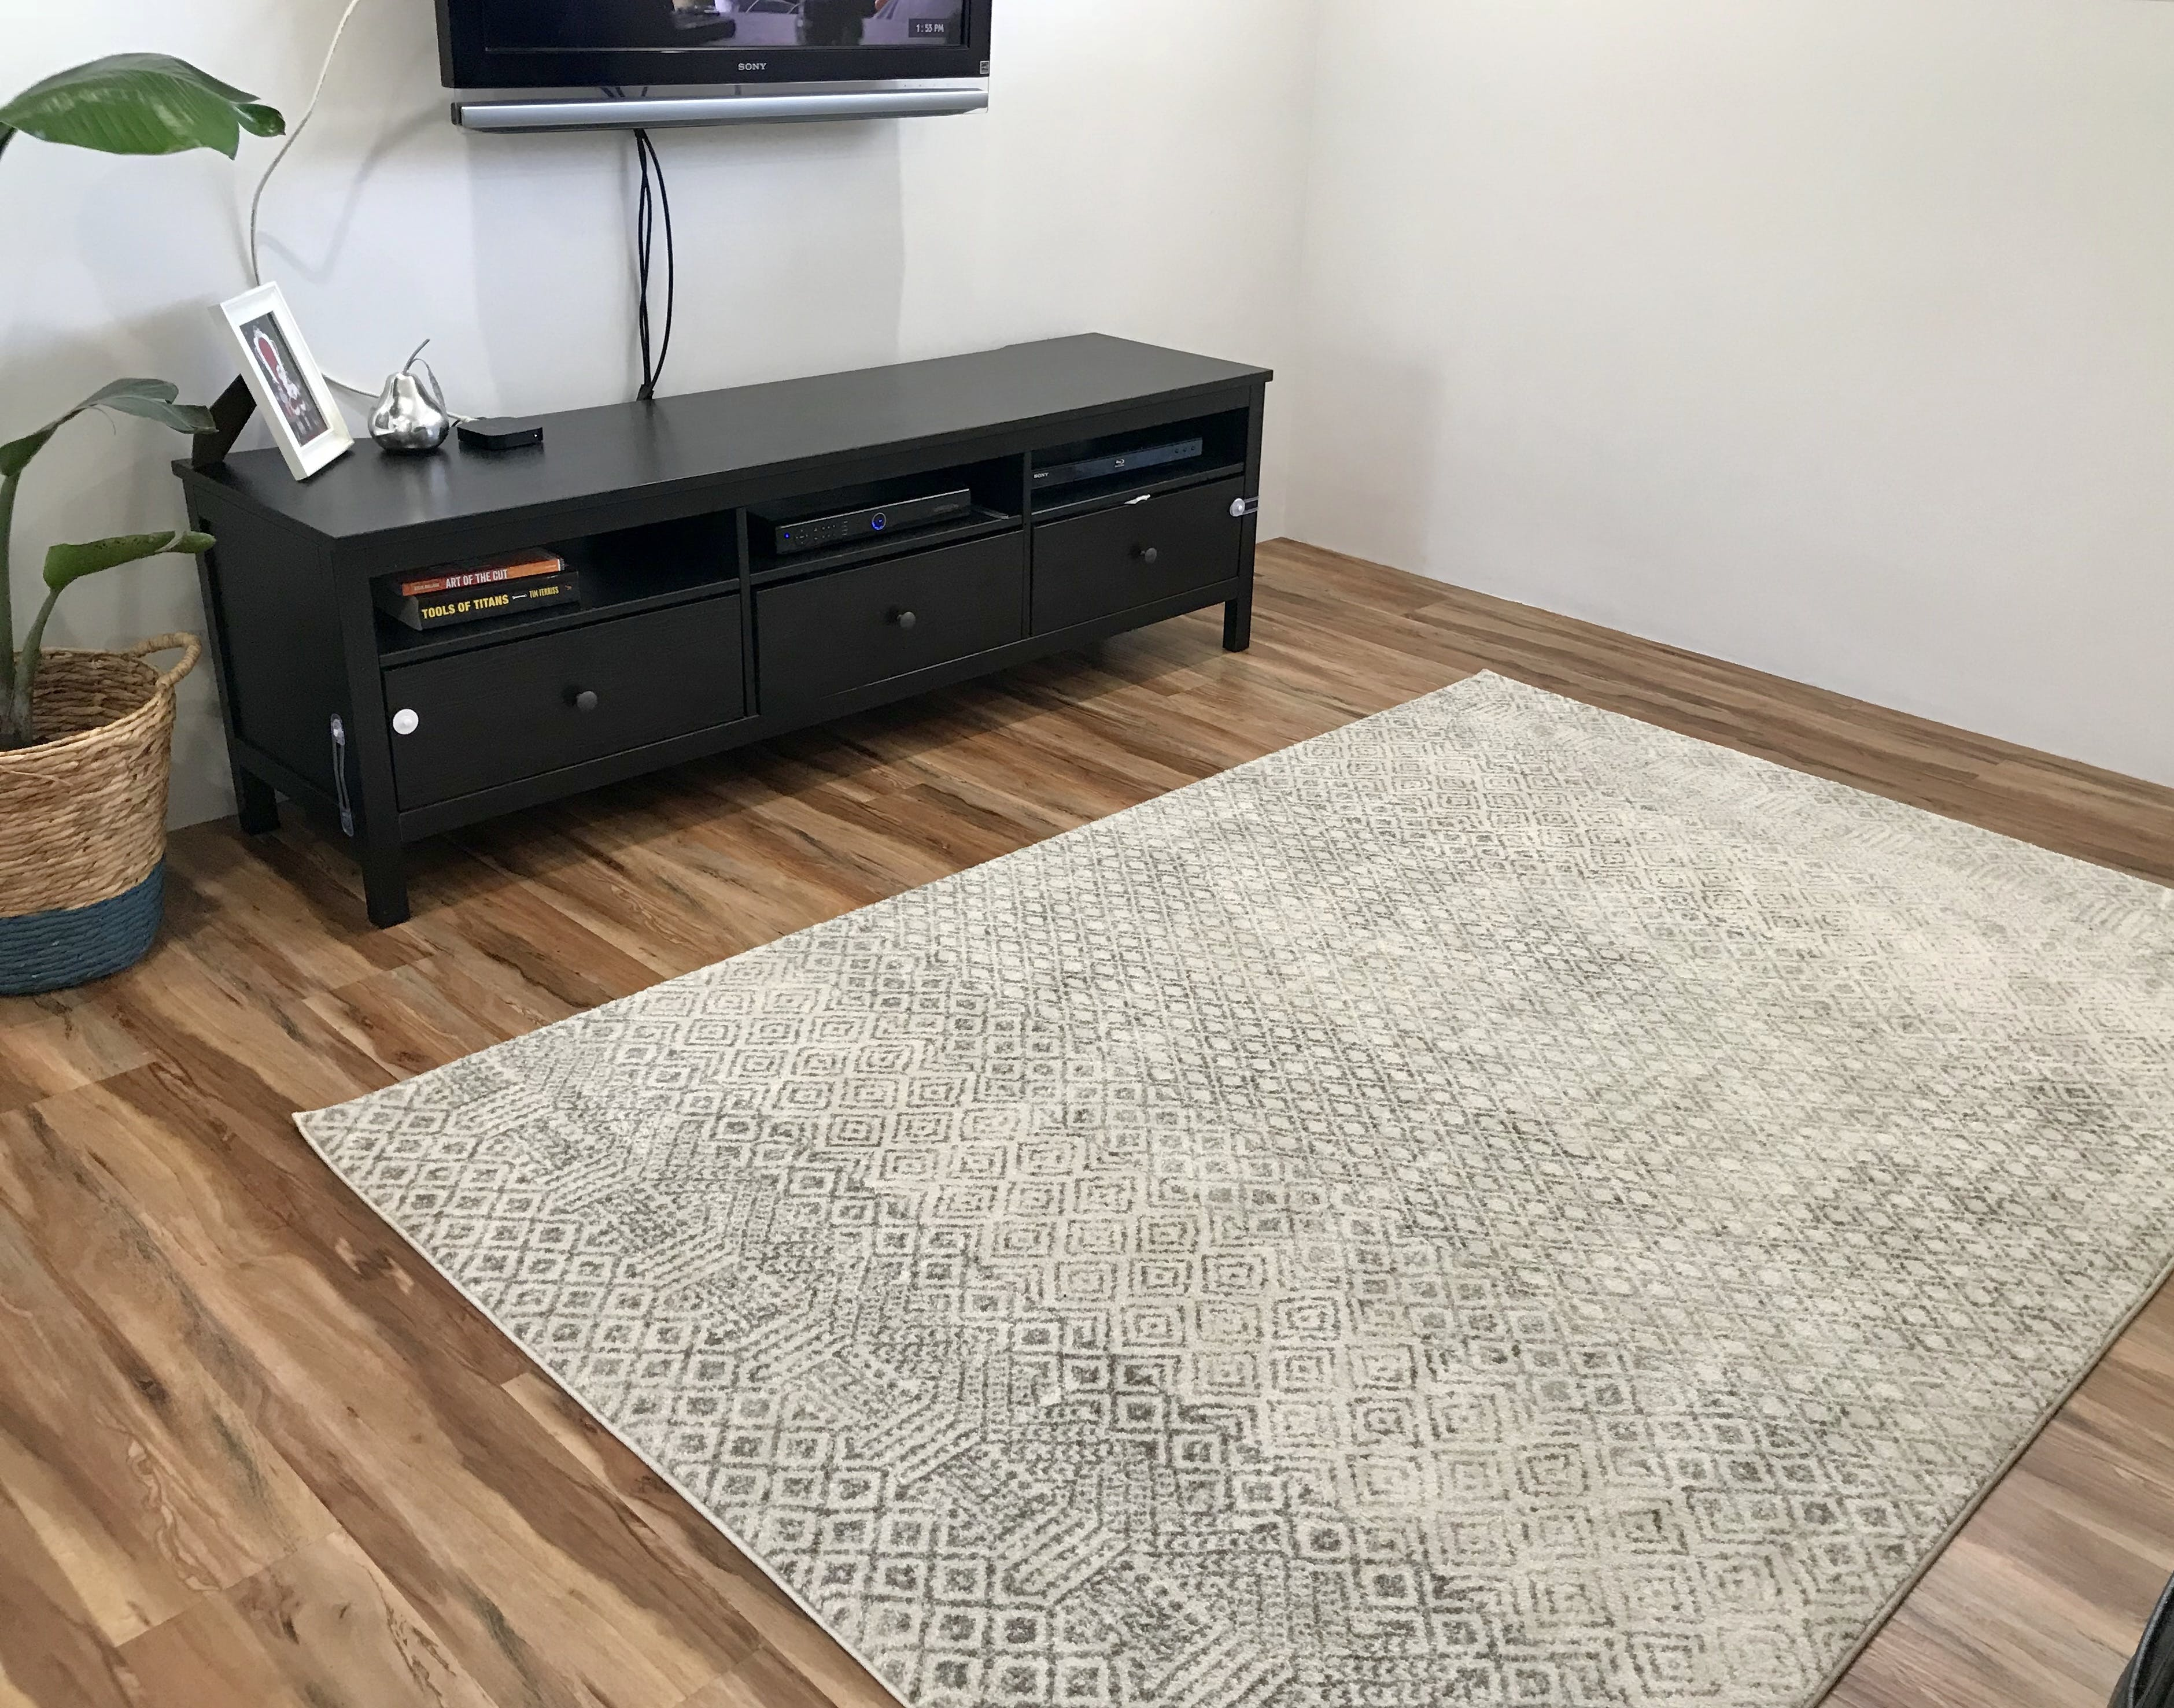 Rugsofbeauty Com Au Replied Dear Emma Thank You Very Much For Reviewing The Rug Purchased From Us We Are So Glad That Hy With Your